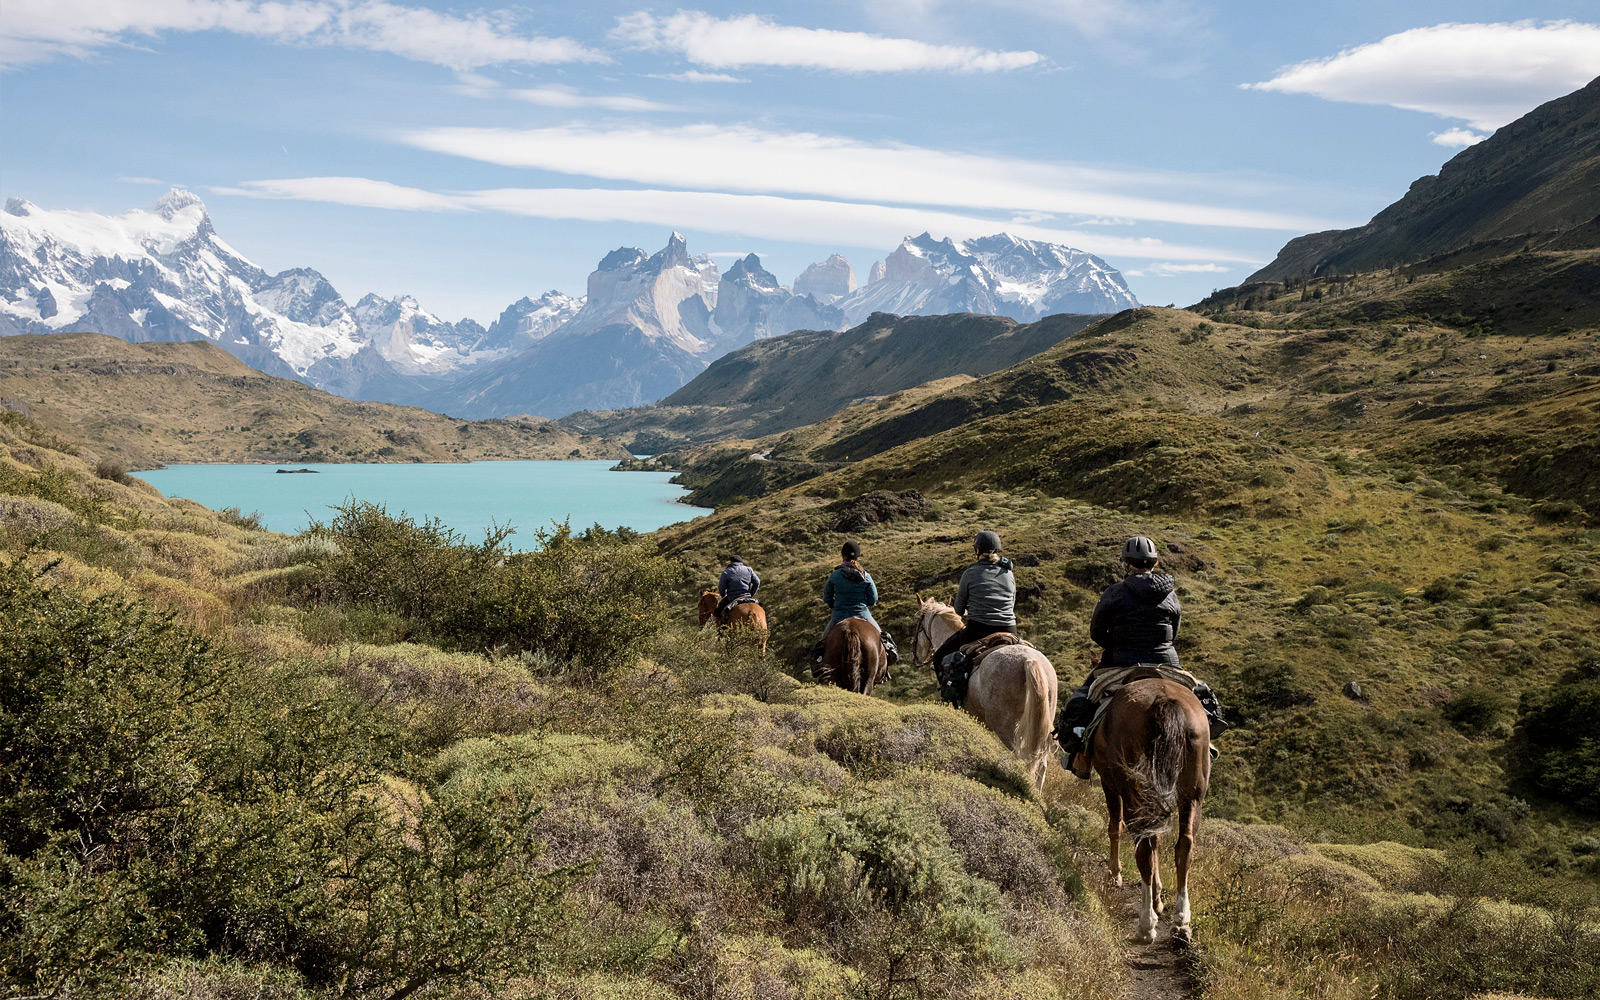 Horseback Riding in Torres del Paine National Park